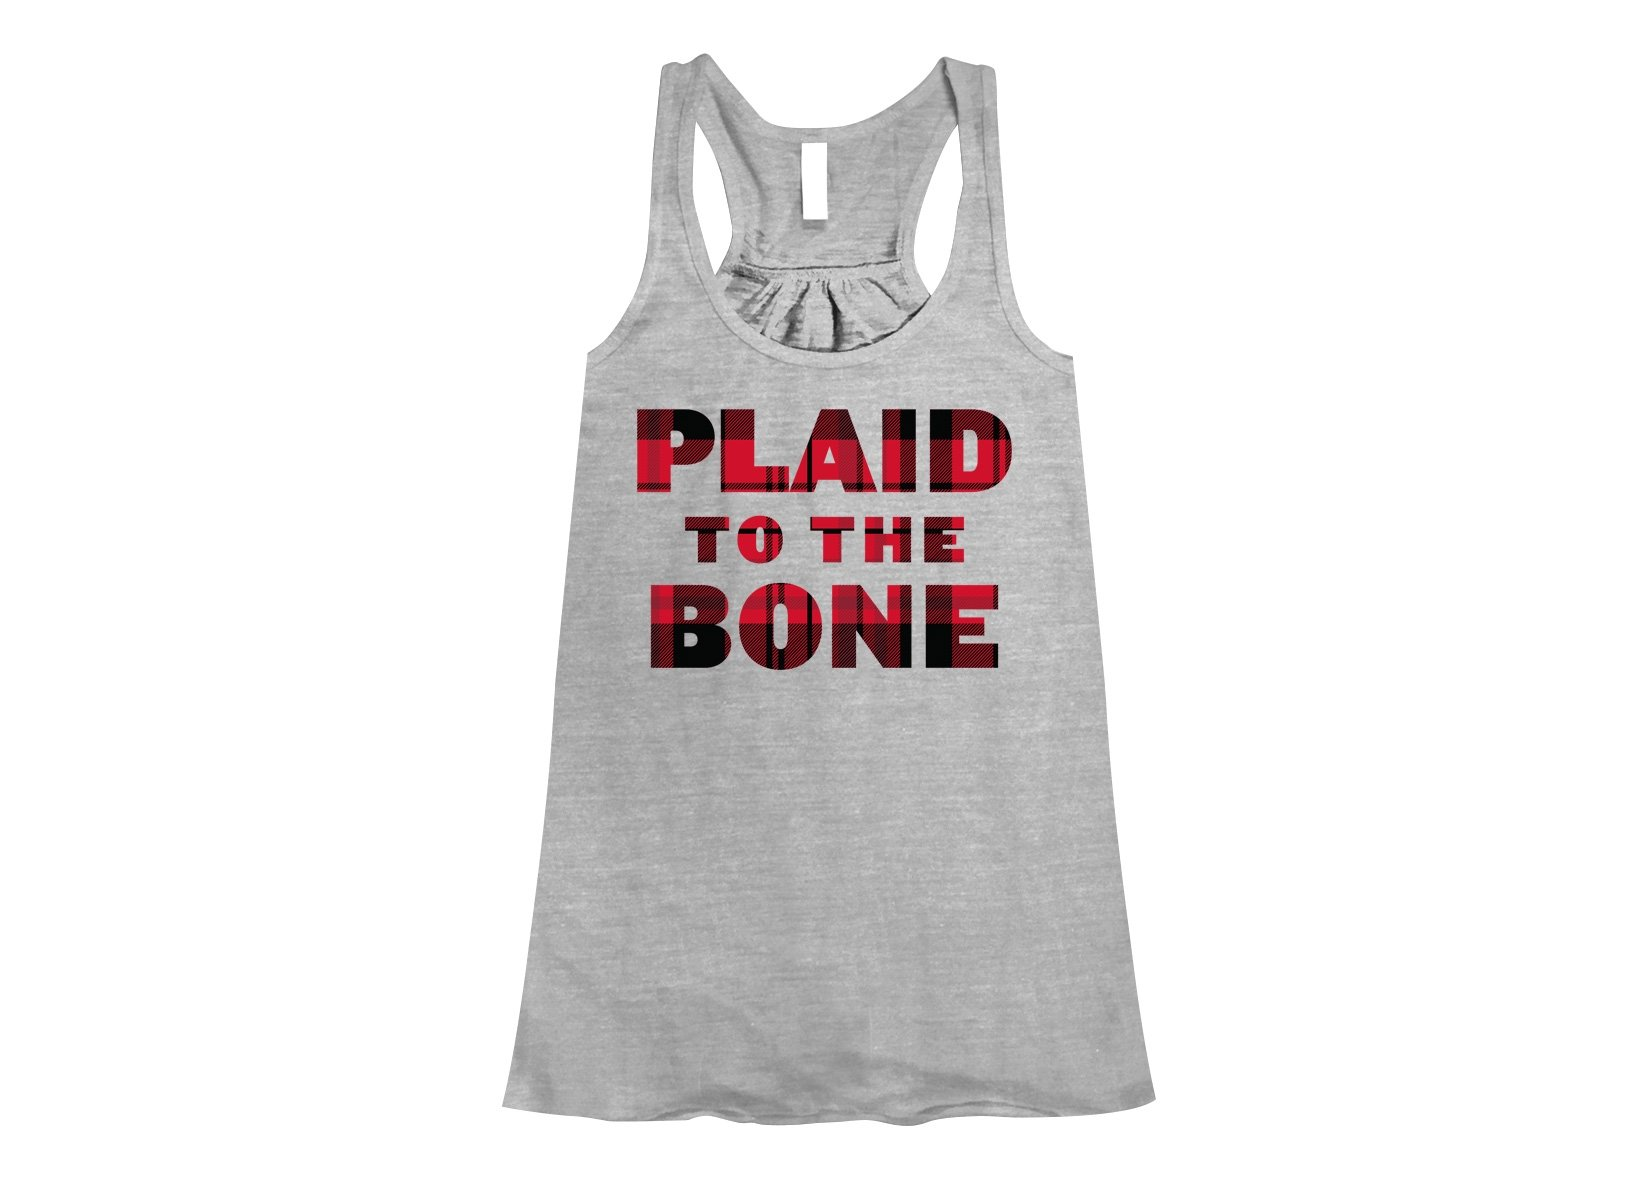 Plaid To The Bone on Womens Tanks T-Shirt